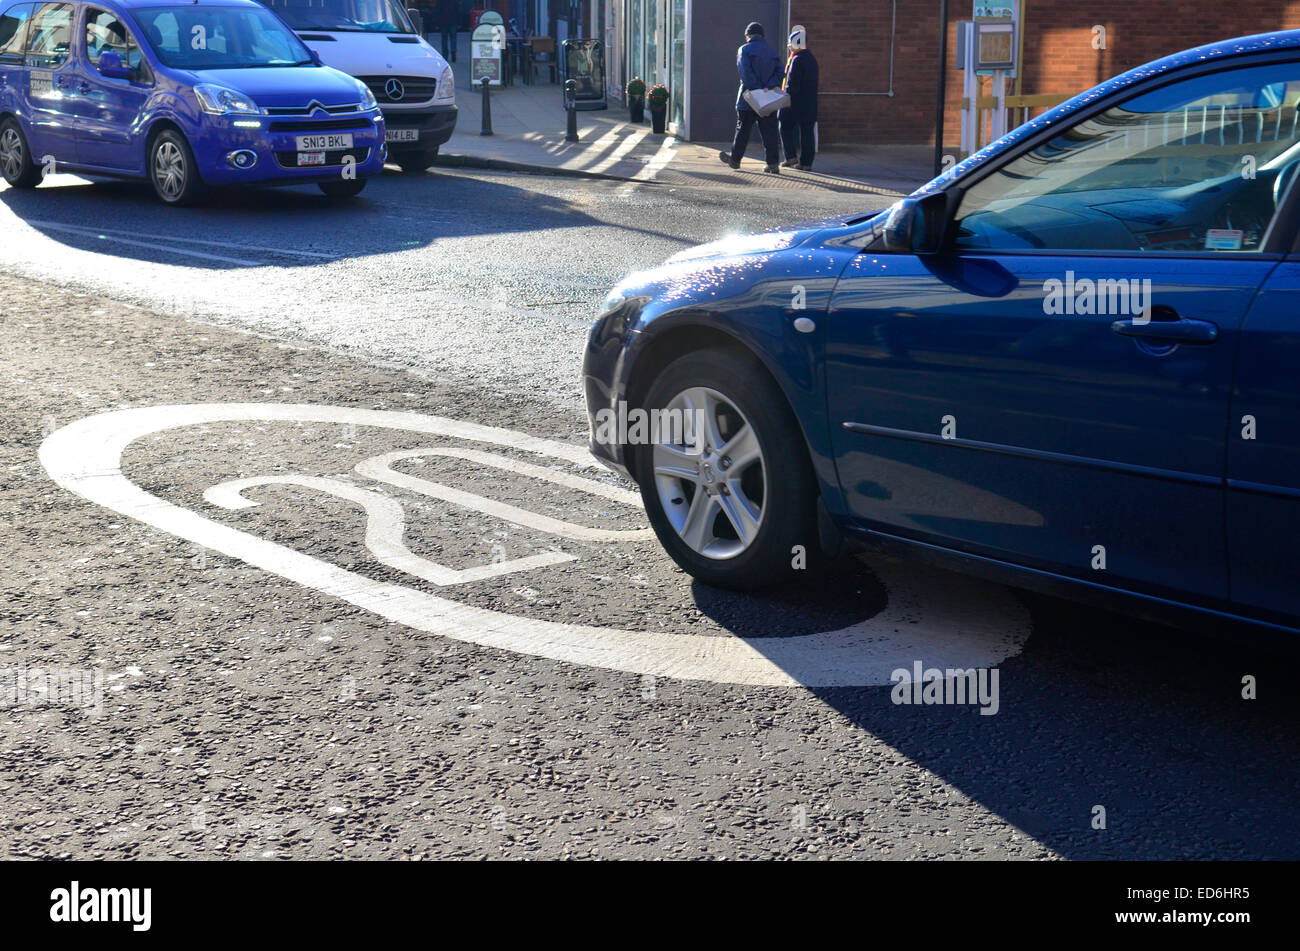 UK.Most of Bristol covered by a 20 MPH Speed Limit.Location shown Whiteladies Road. Robert Timoney/Alamy Stock Photo